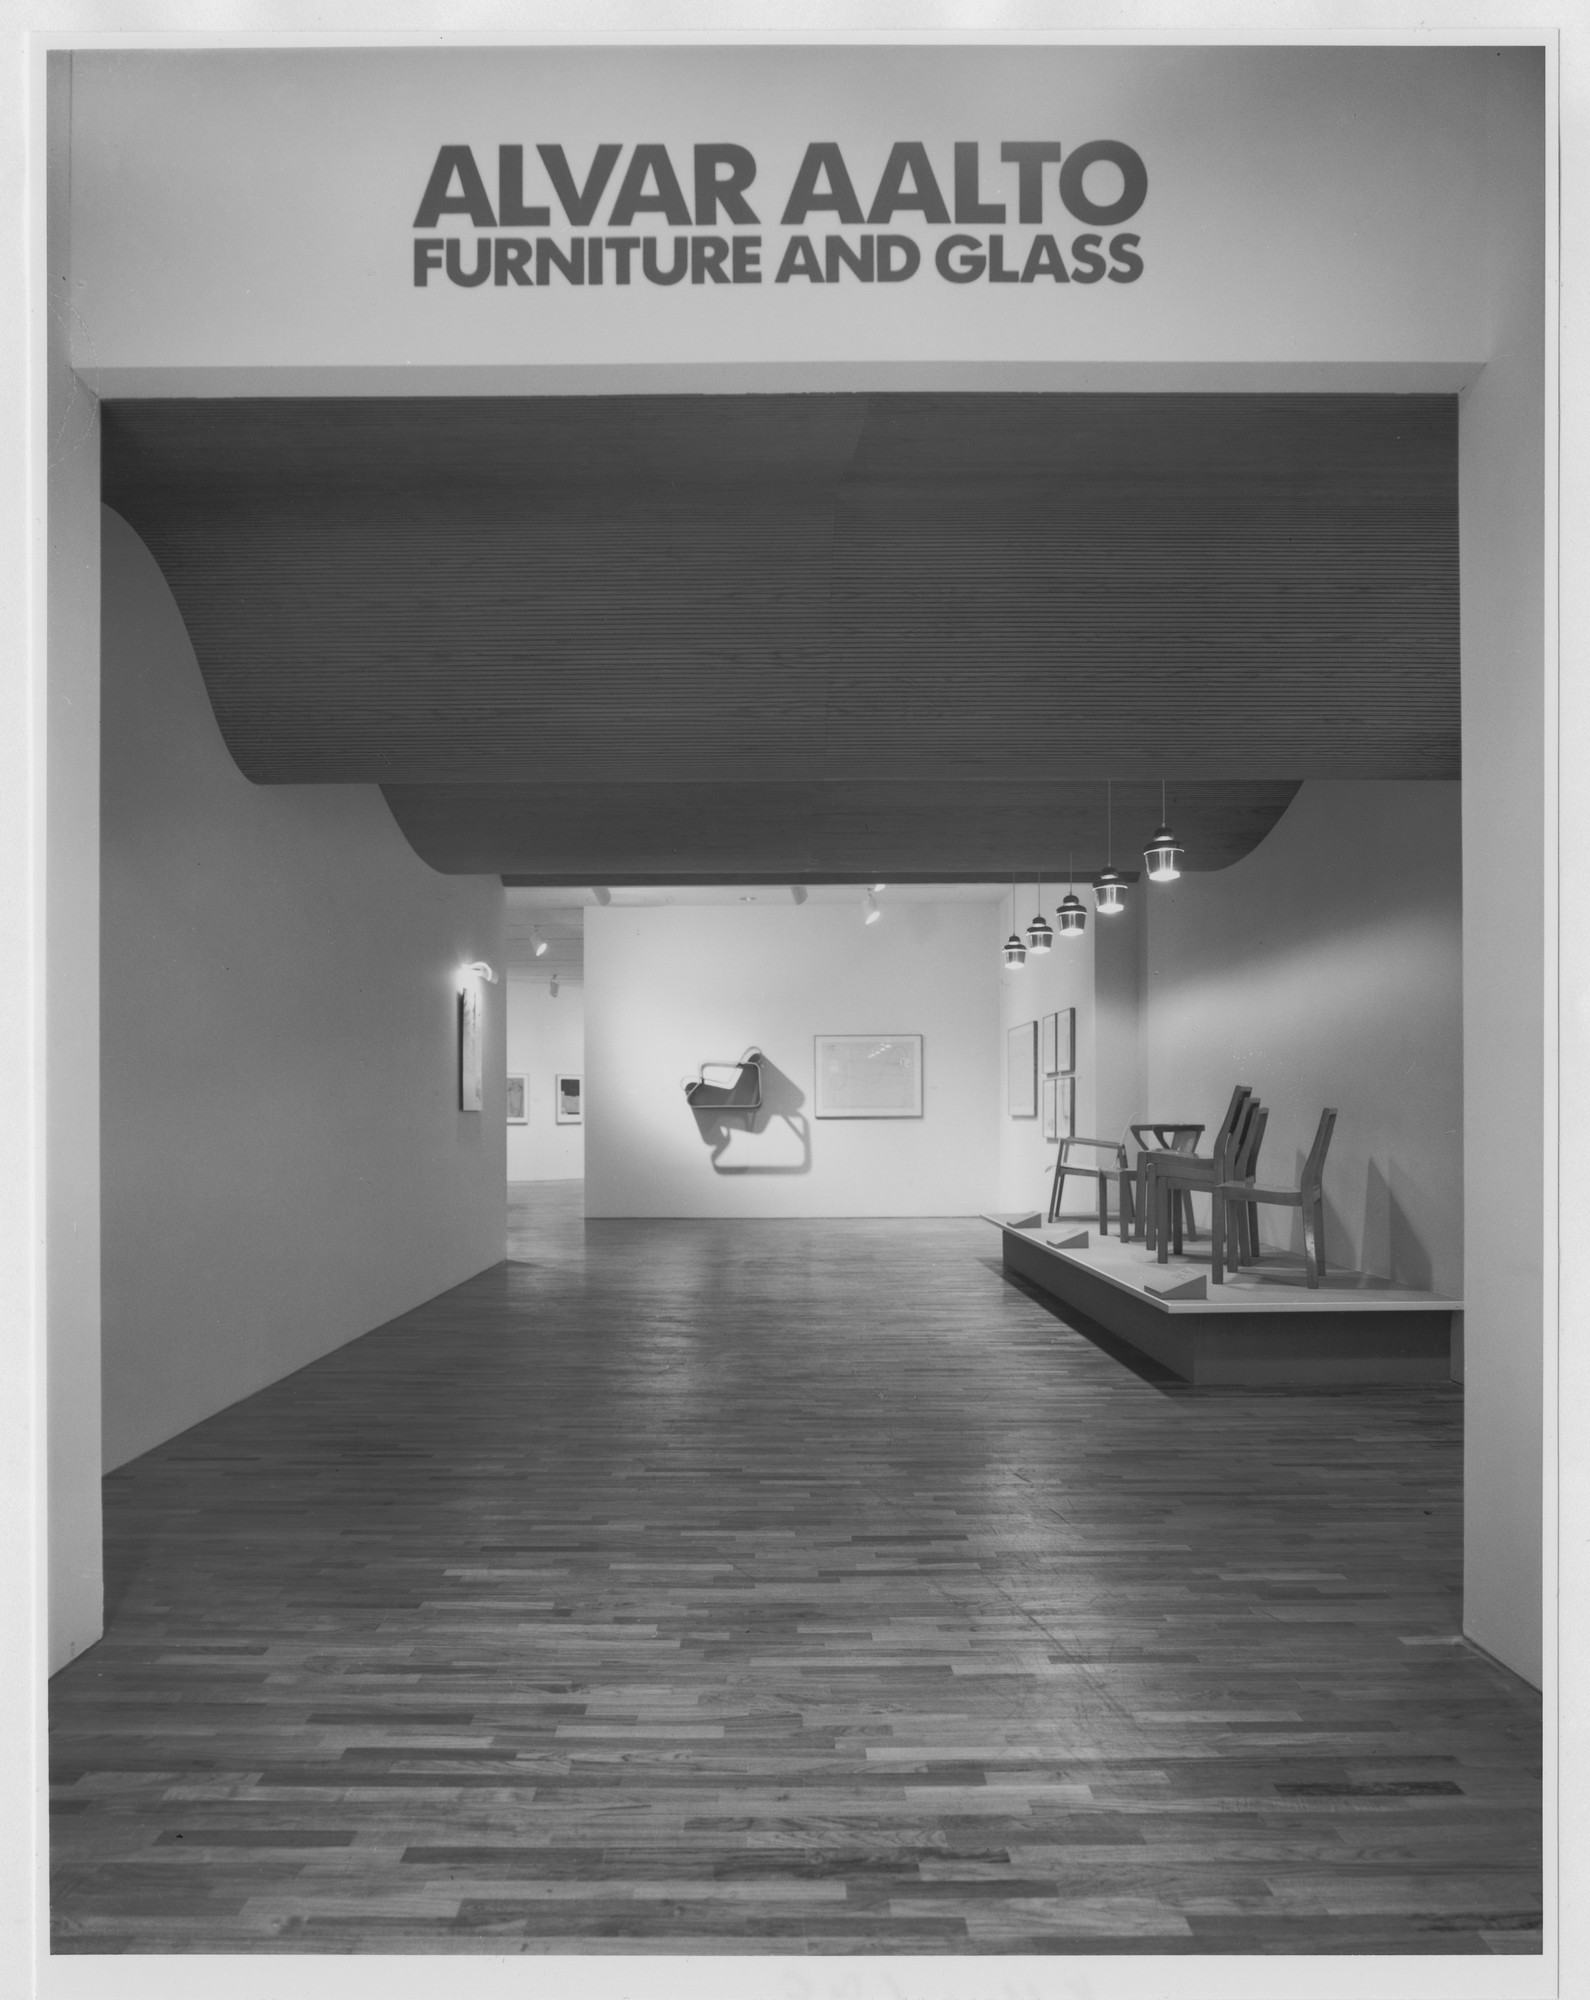 "Installation view of the exhibition, ""Alvar Aalto: Furniture and Glass"" September 26, 1984–November 27, 1984. Photographic Archive. The Museum of Modern Art Archives, New York. IN1383.1. Photograph by Katherine Keller."